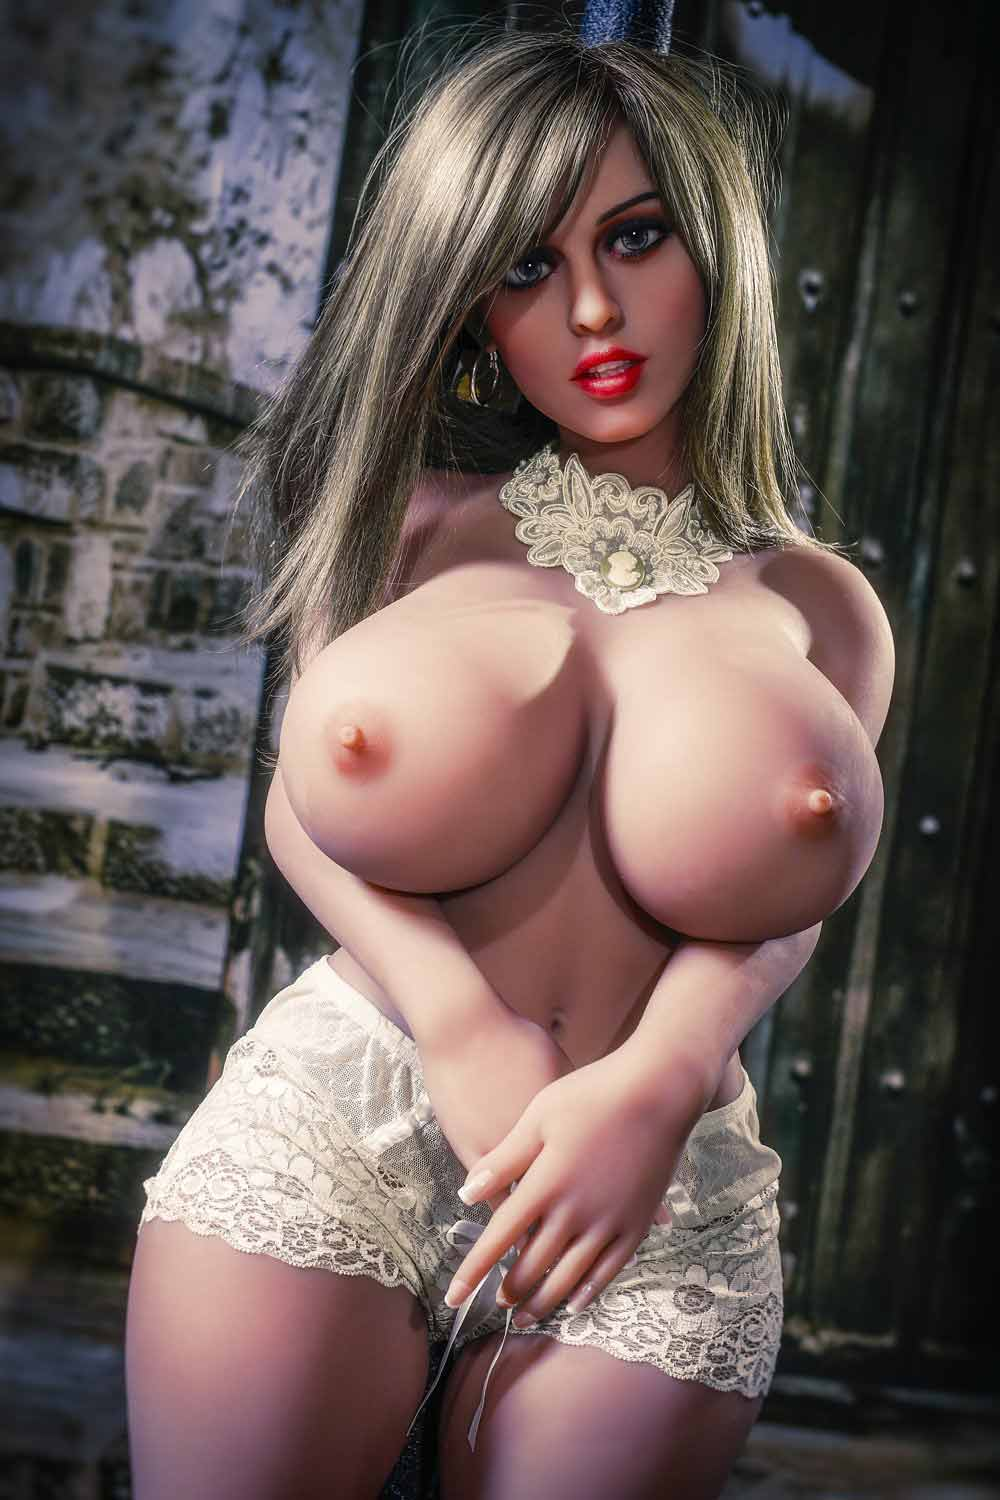 Sex doll with hands on belly